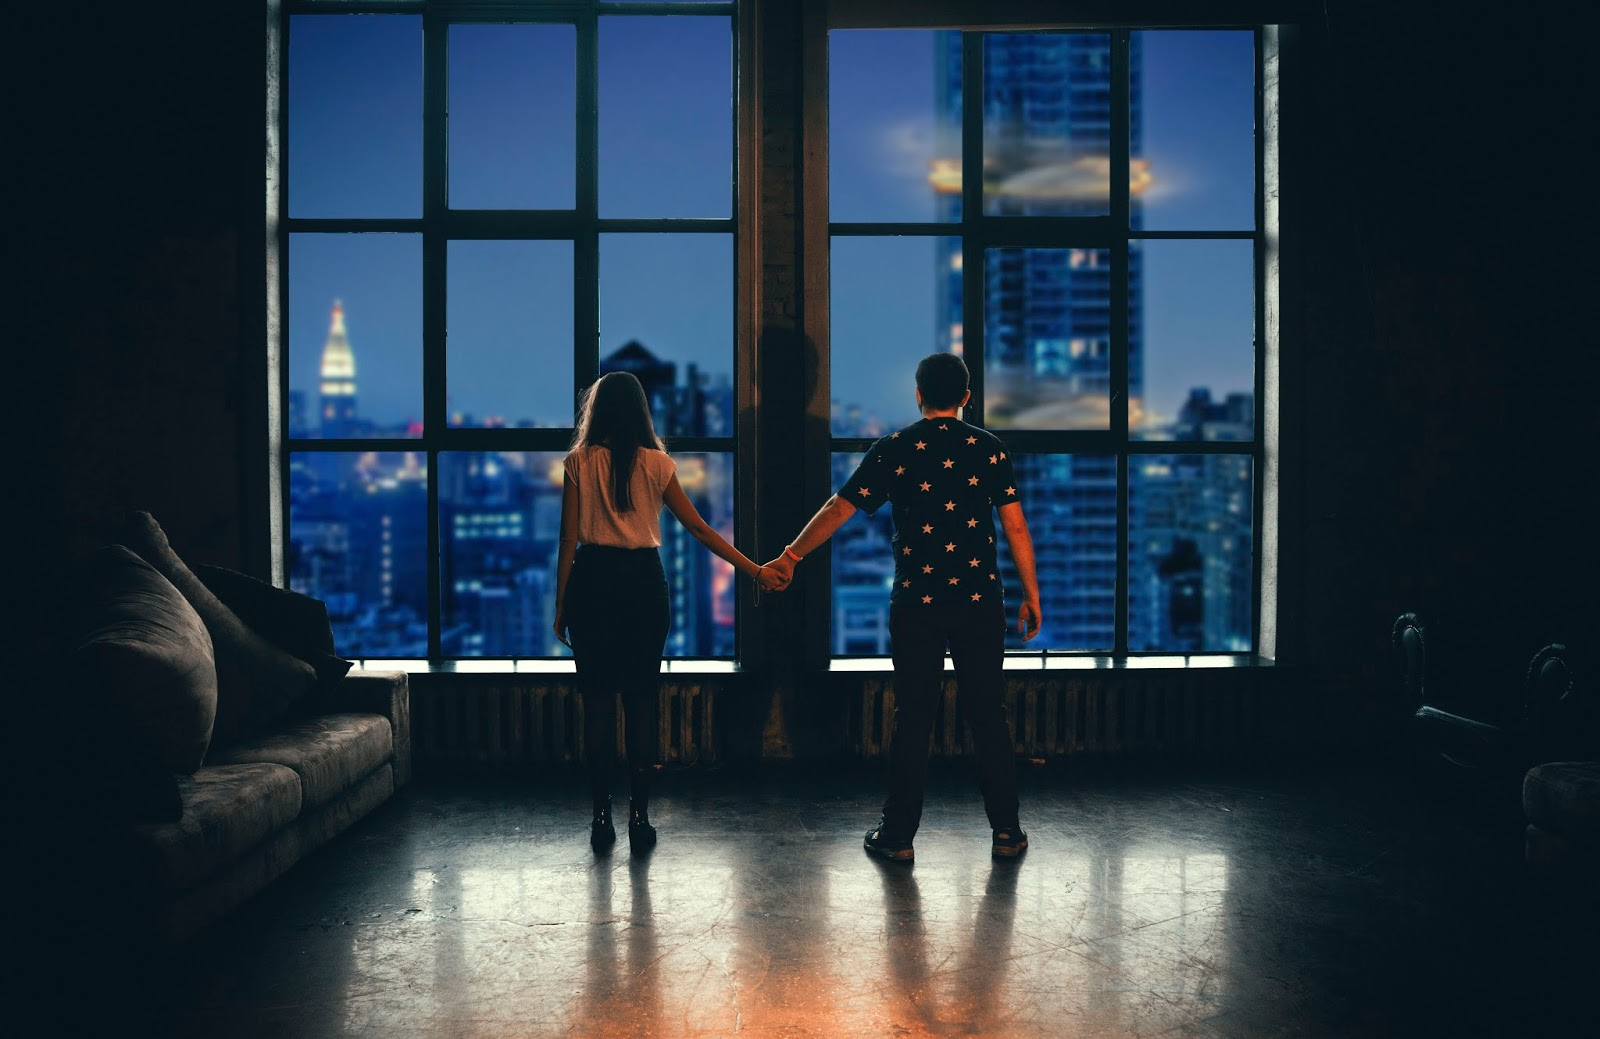 couple holding hands looking out of a skyscraper window over a brightly lit city